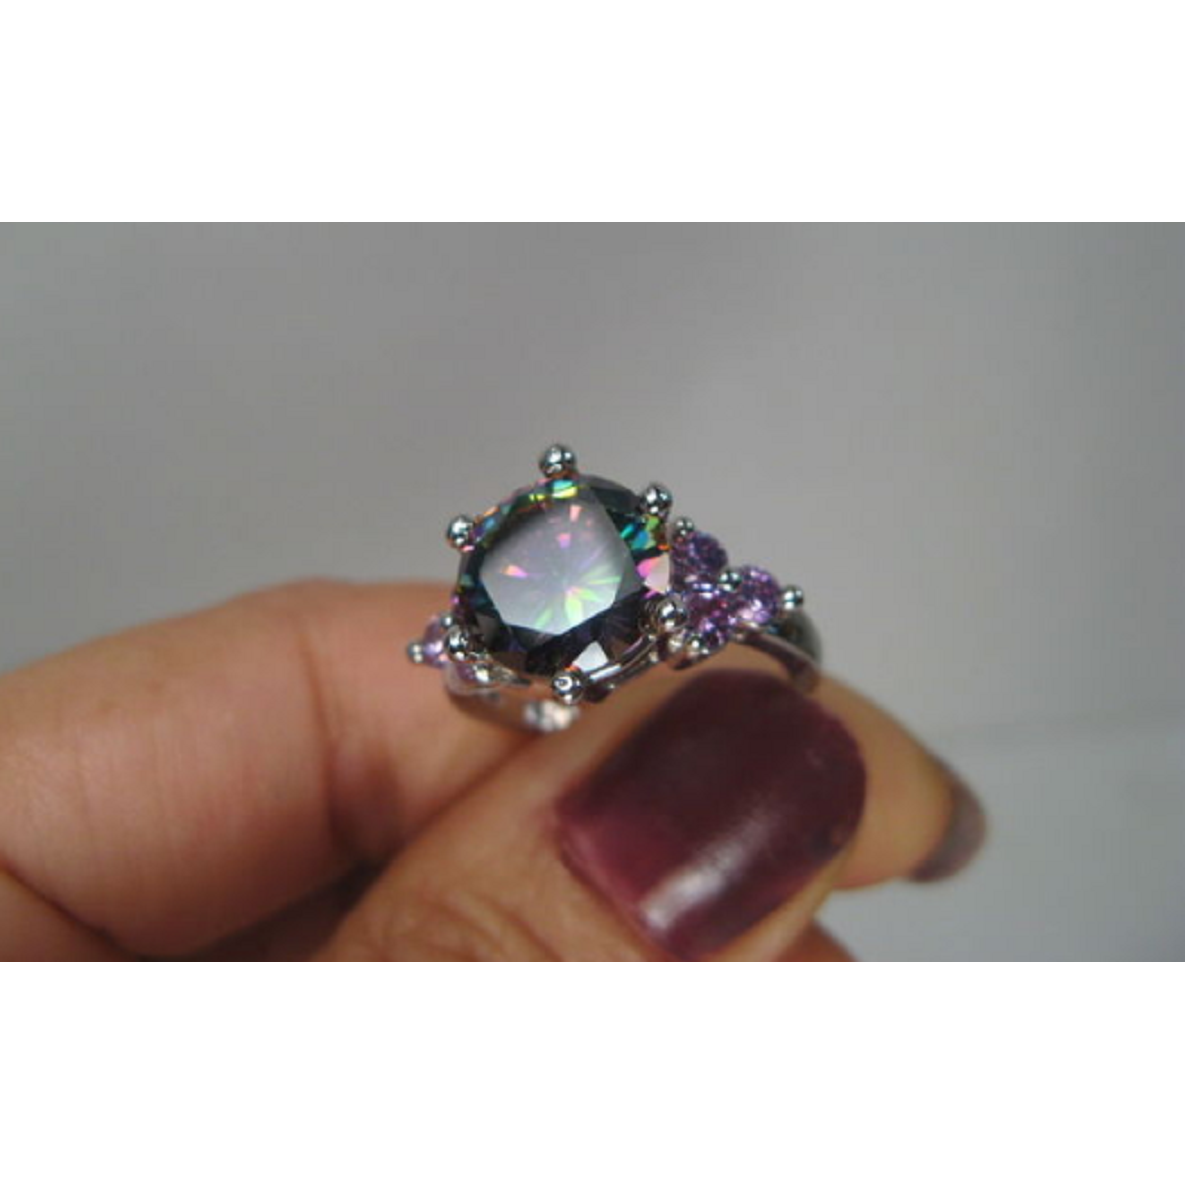 .925 STERLING SILVER PLATED PRISMA-LILAC CZ RING -  New Fashion Finds By Carole